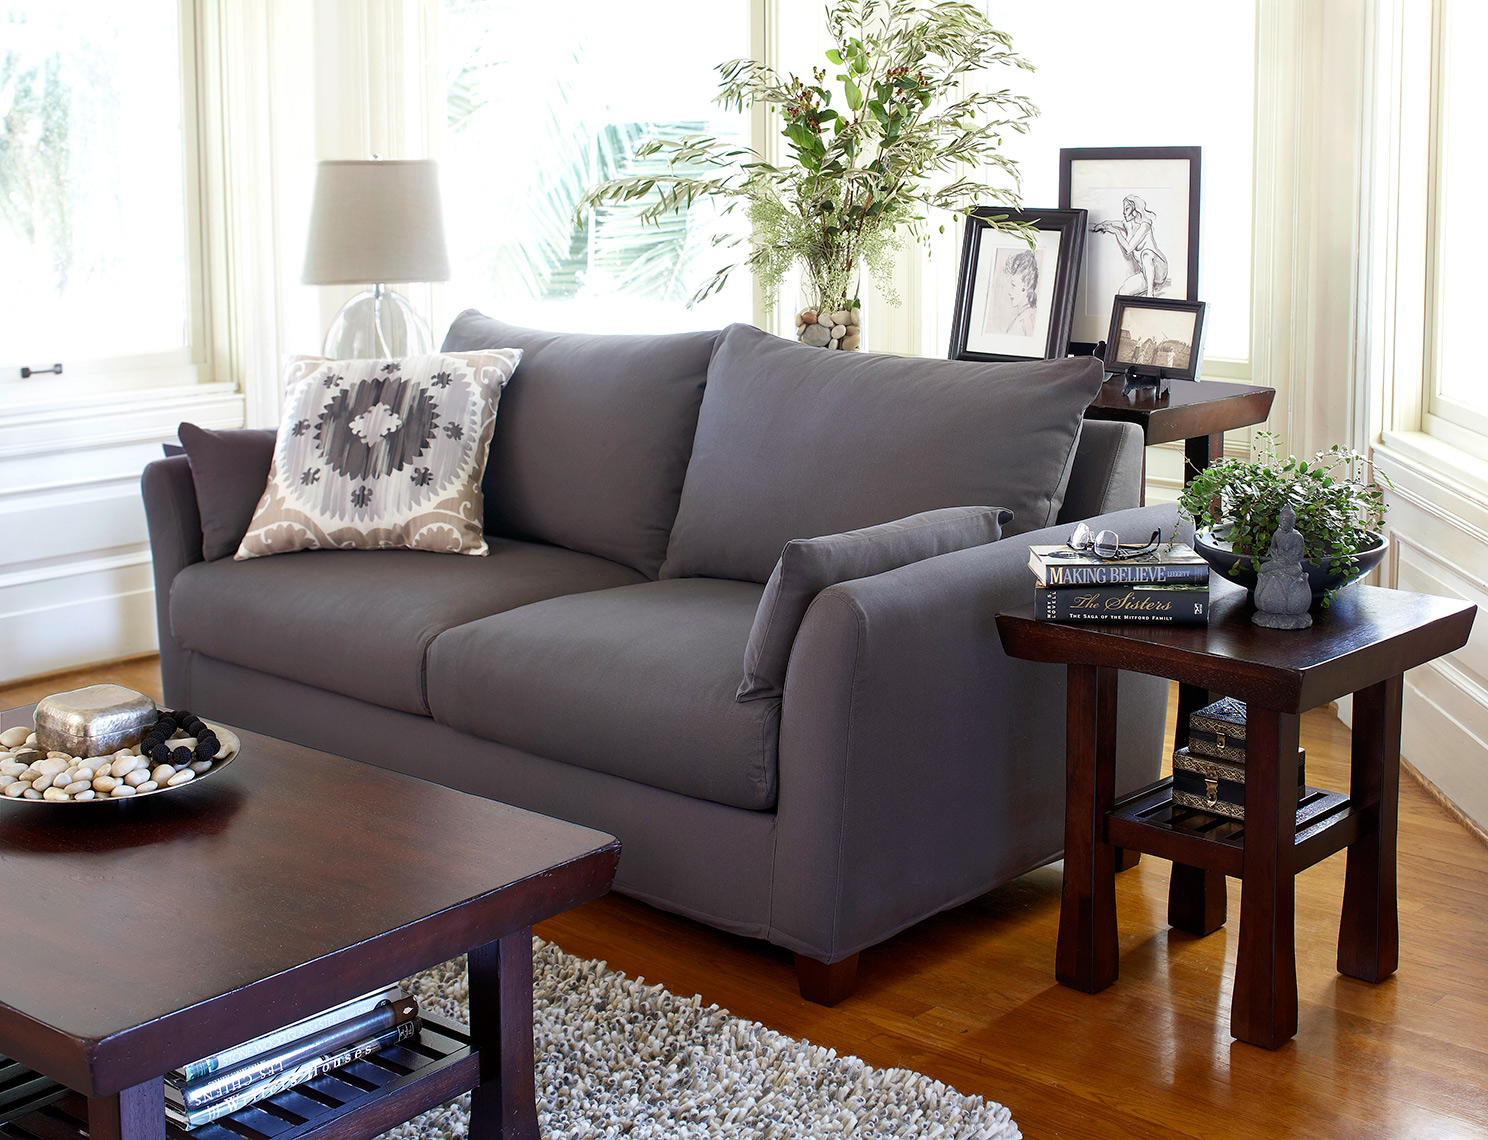 Sofa-in-Living-Room